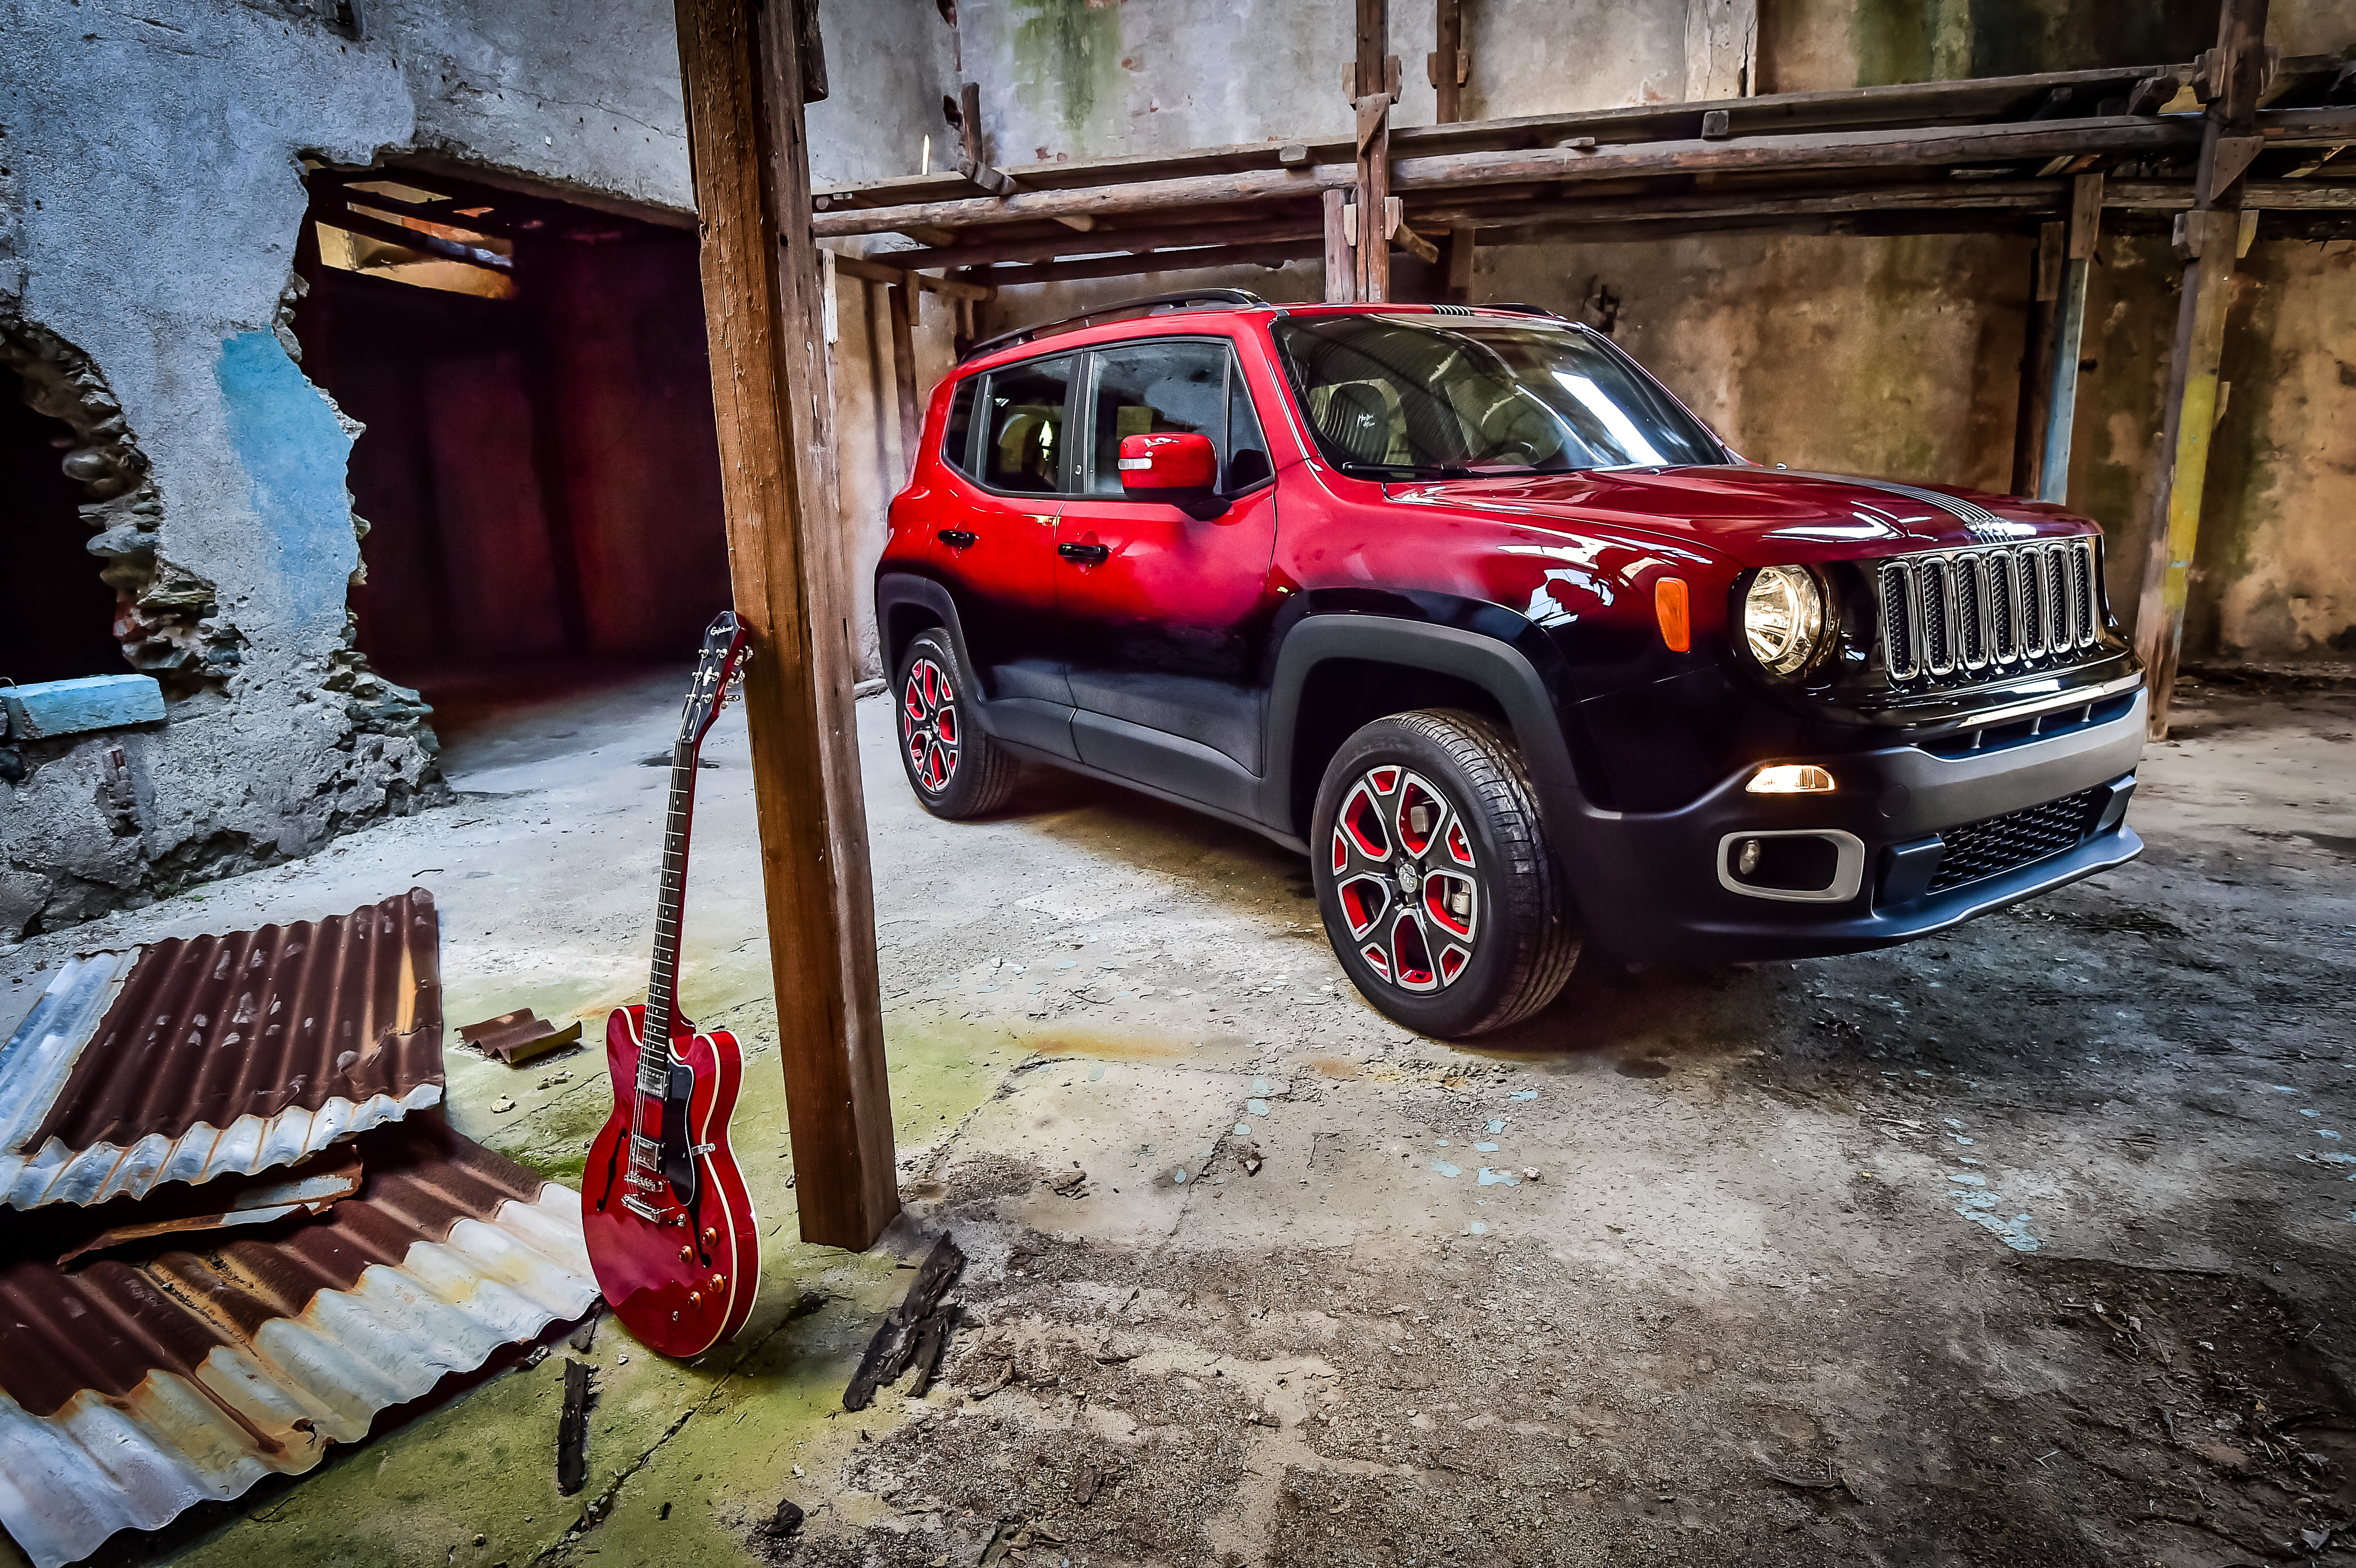 A Renegade Jeep customised for the Montreux Jazz Festival